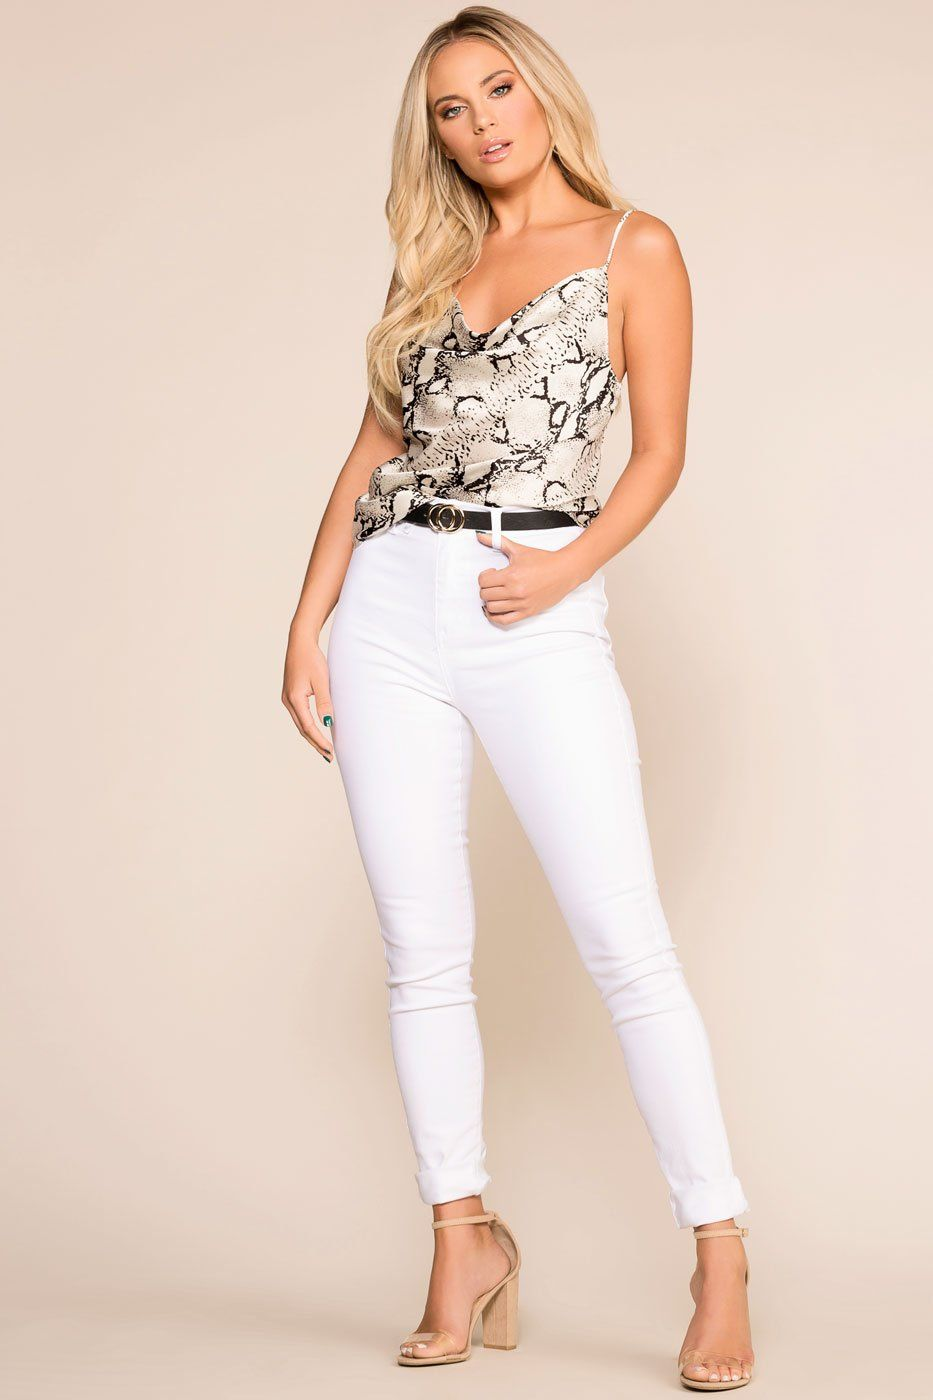 79de887e0 New Beginnings White Skinny Jeans